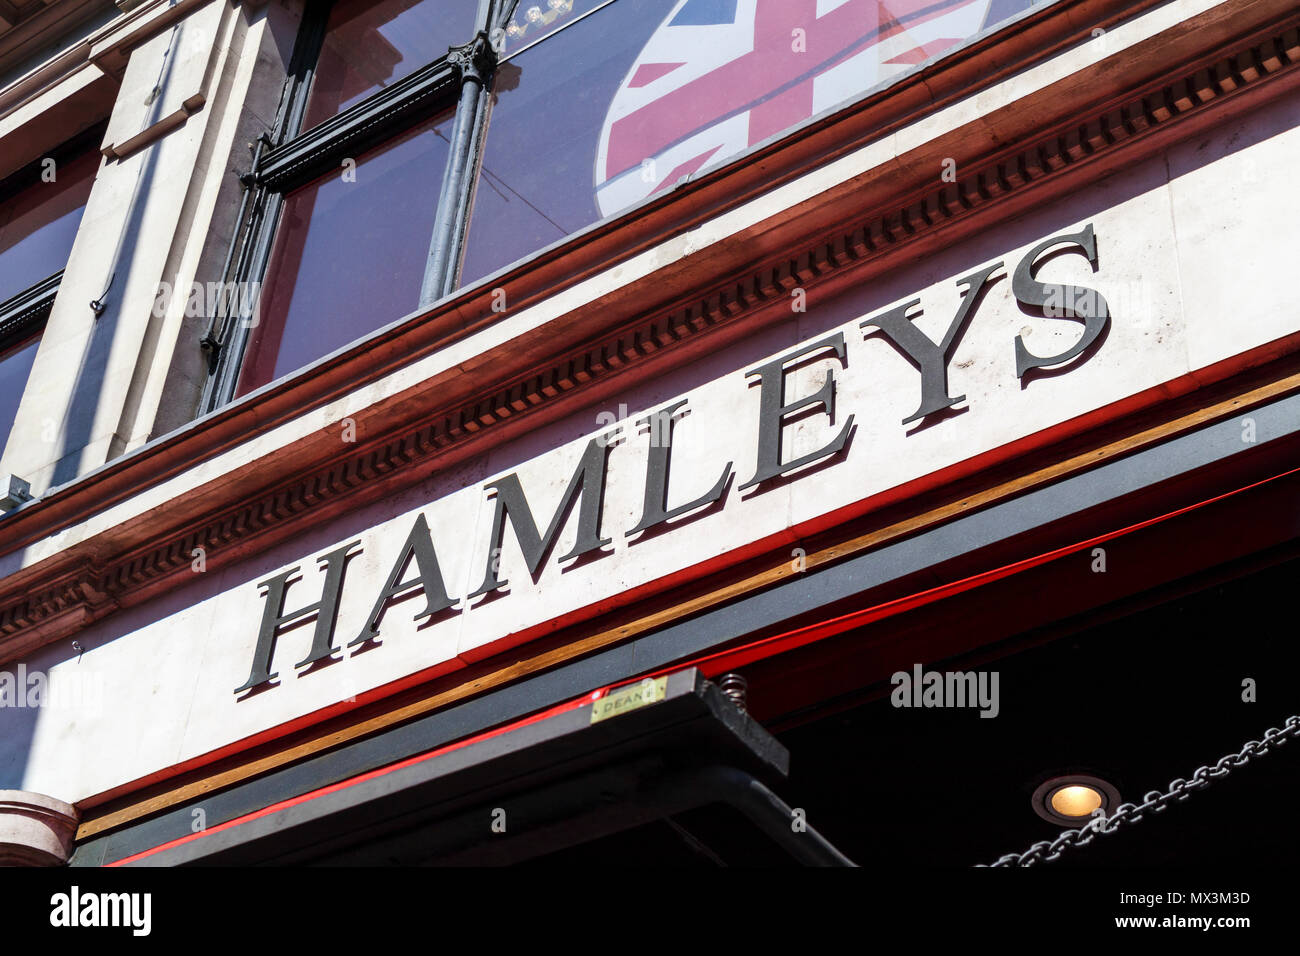 Name sign outside on the frontage of Hamleys, the iconic toy shop in Regent Street, London W1 a major shopping street in the capital city, UK - Stock Image